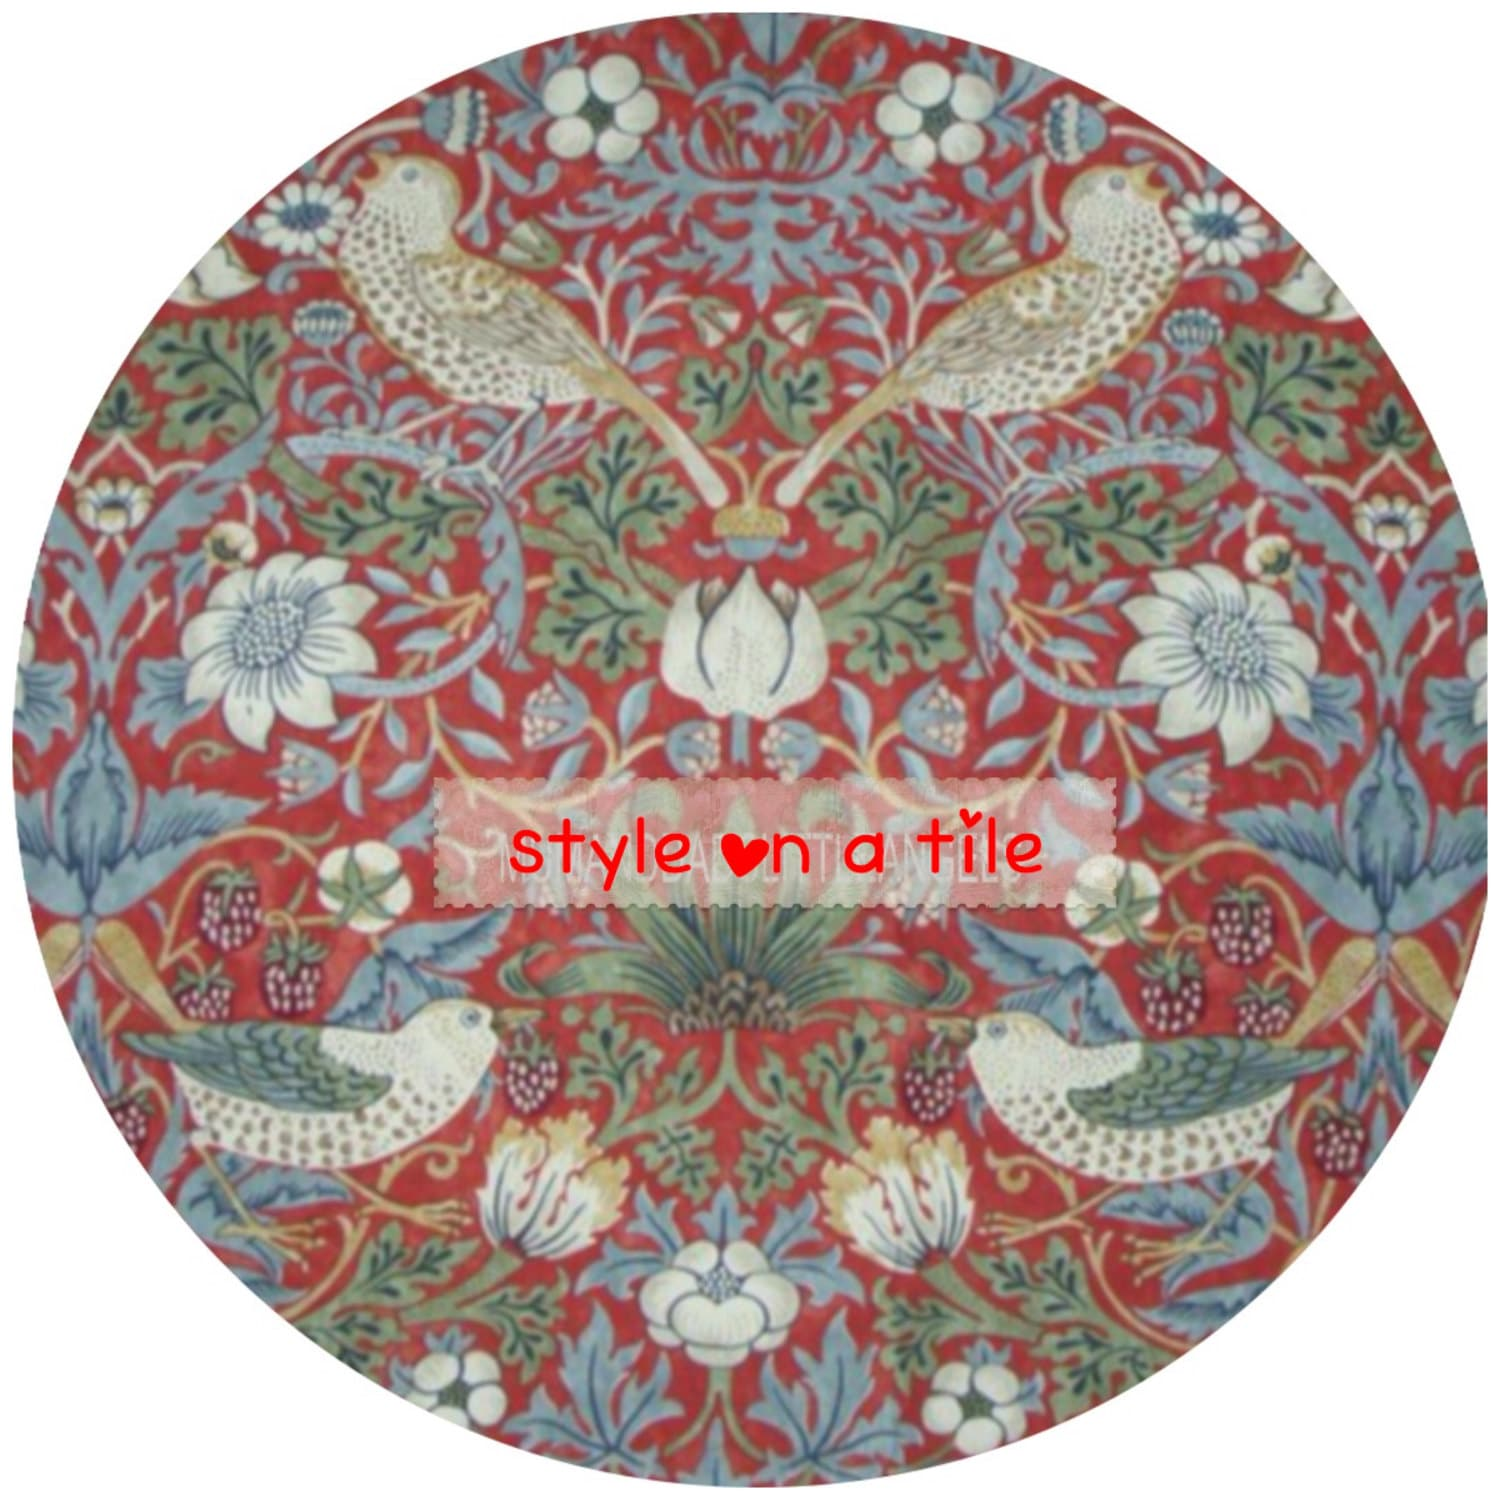 Lovely William Morris Red Strawberry Thief design round